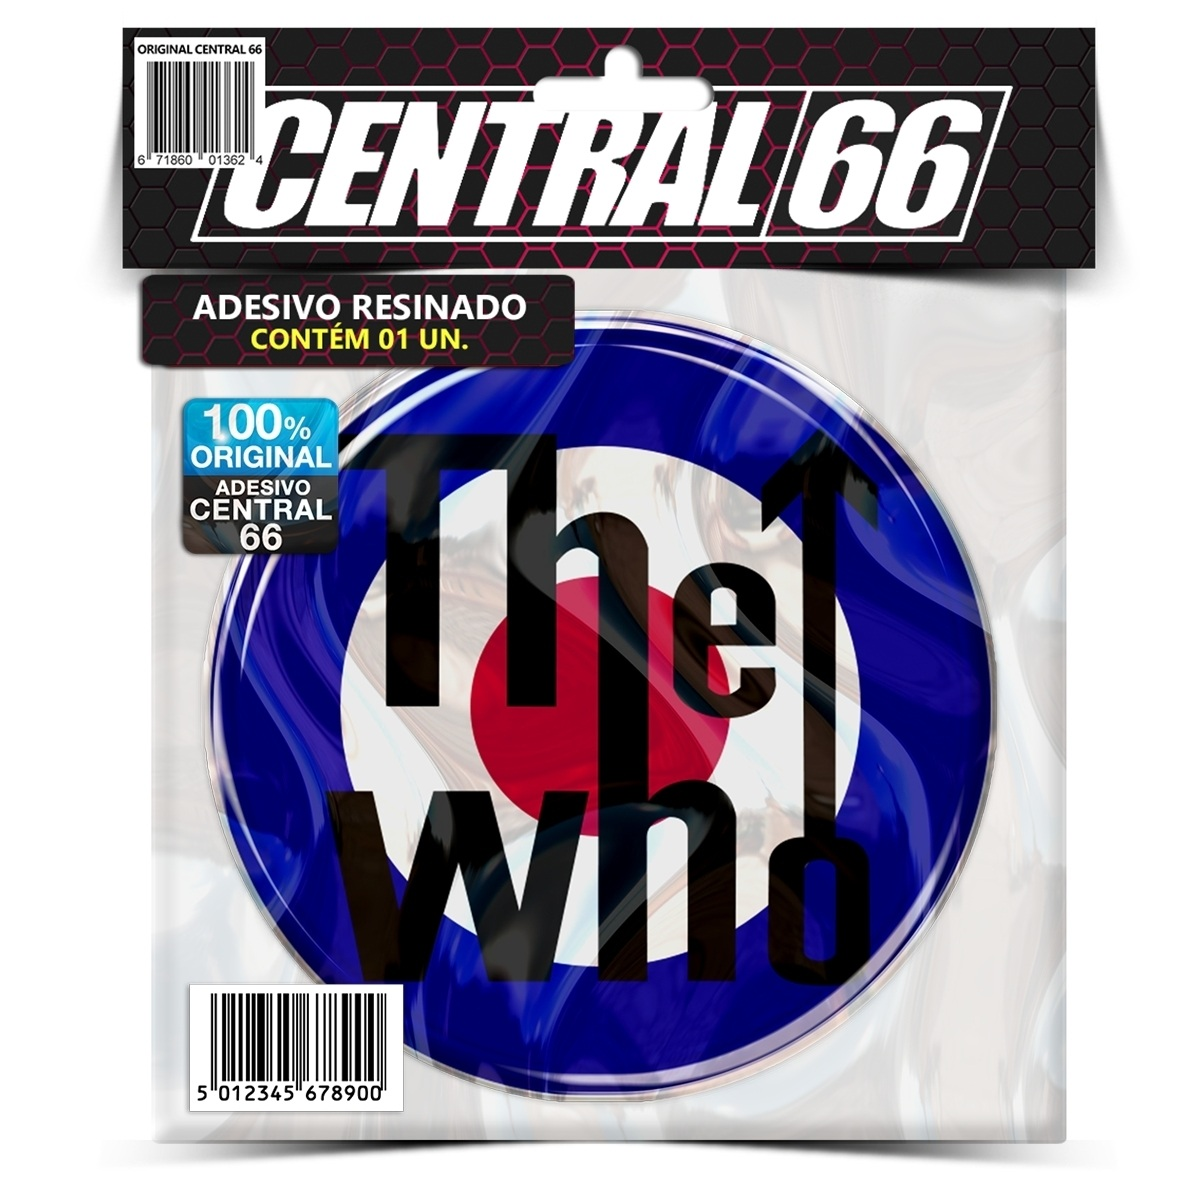 Adesivo The Who – Central 66